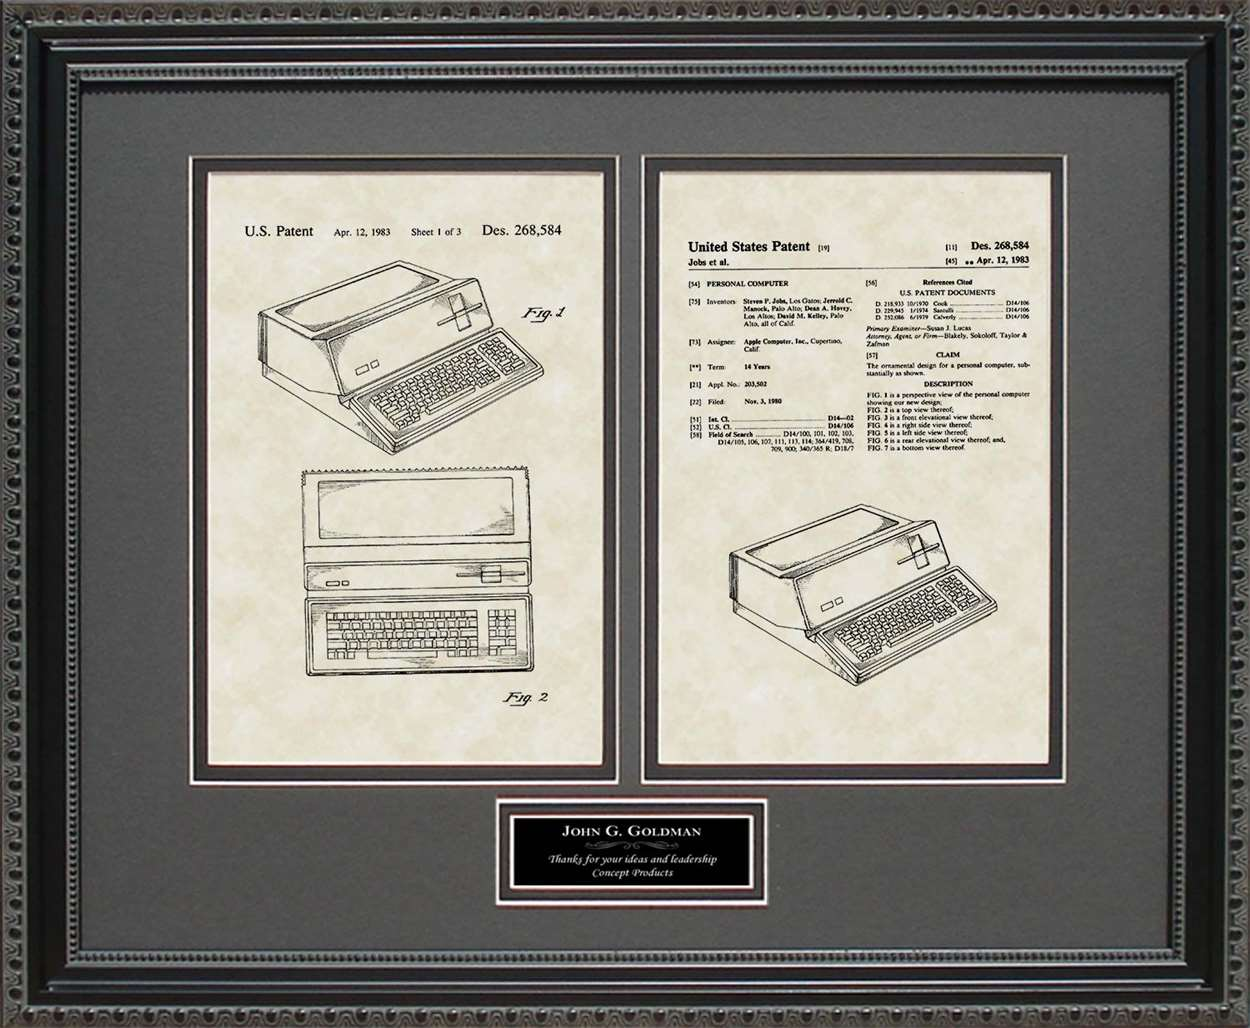 Personalized Apple Computer Patent, Art & Copy, Steve Jobs, 1983